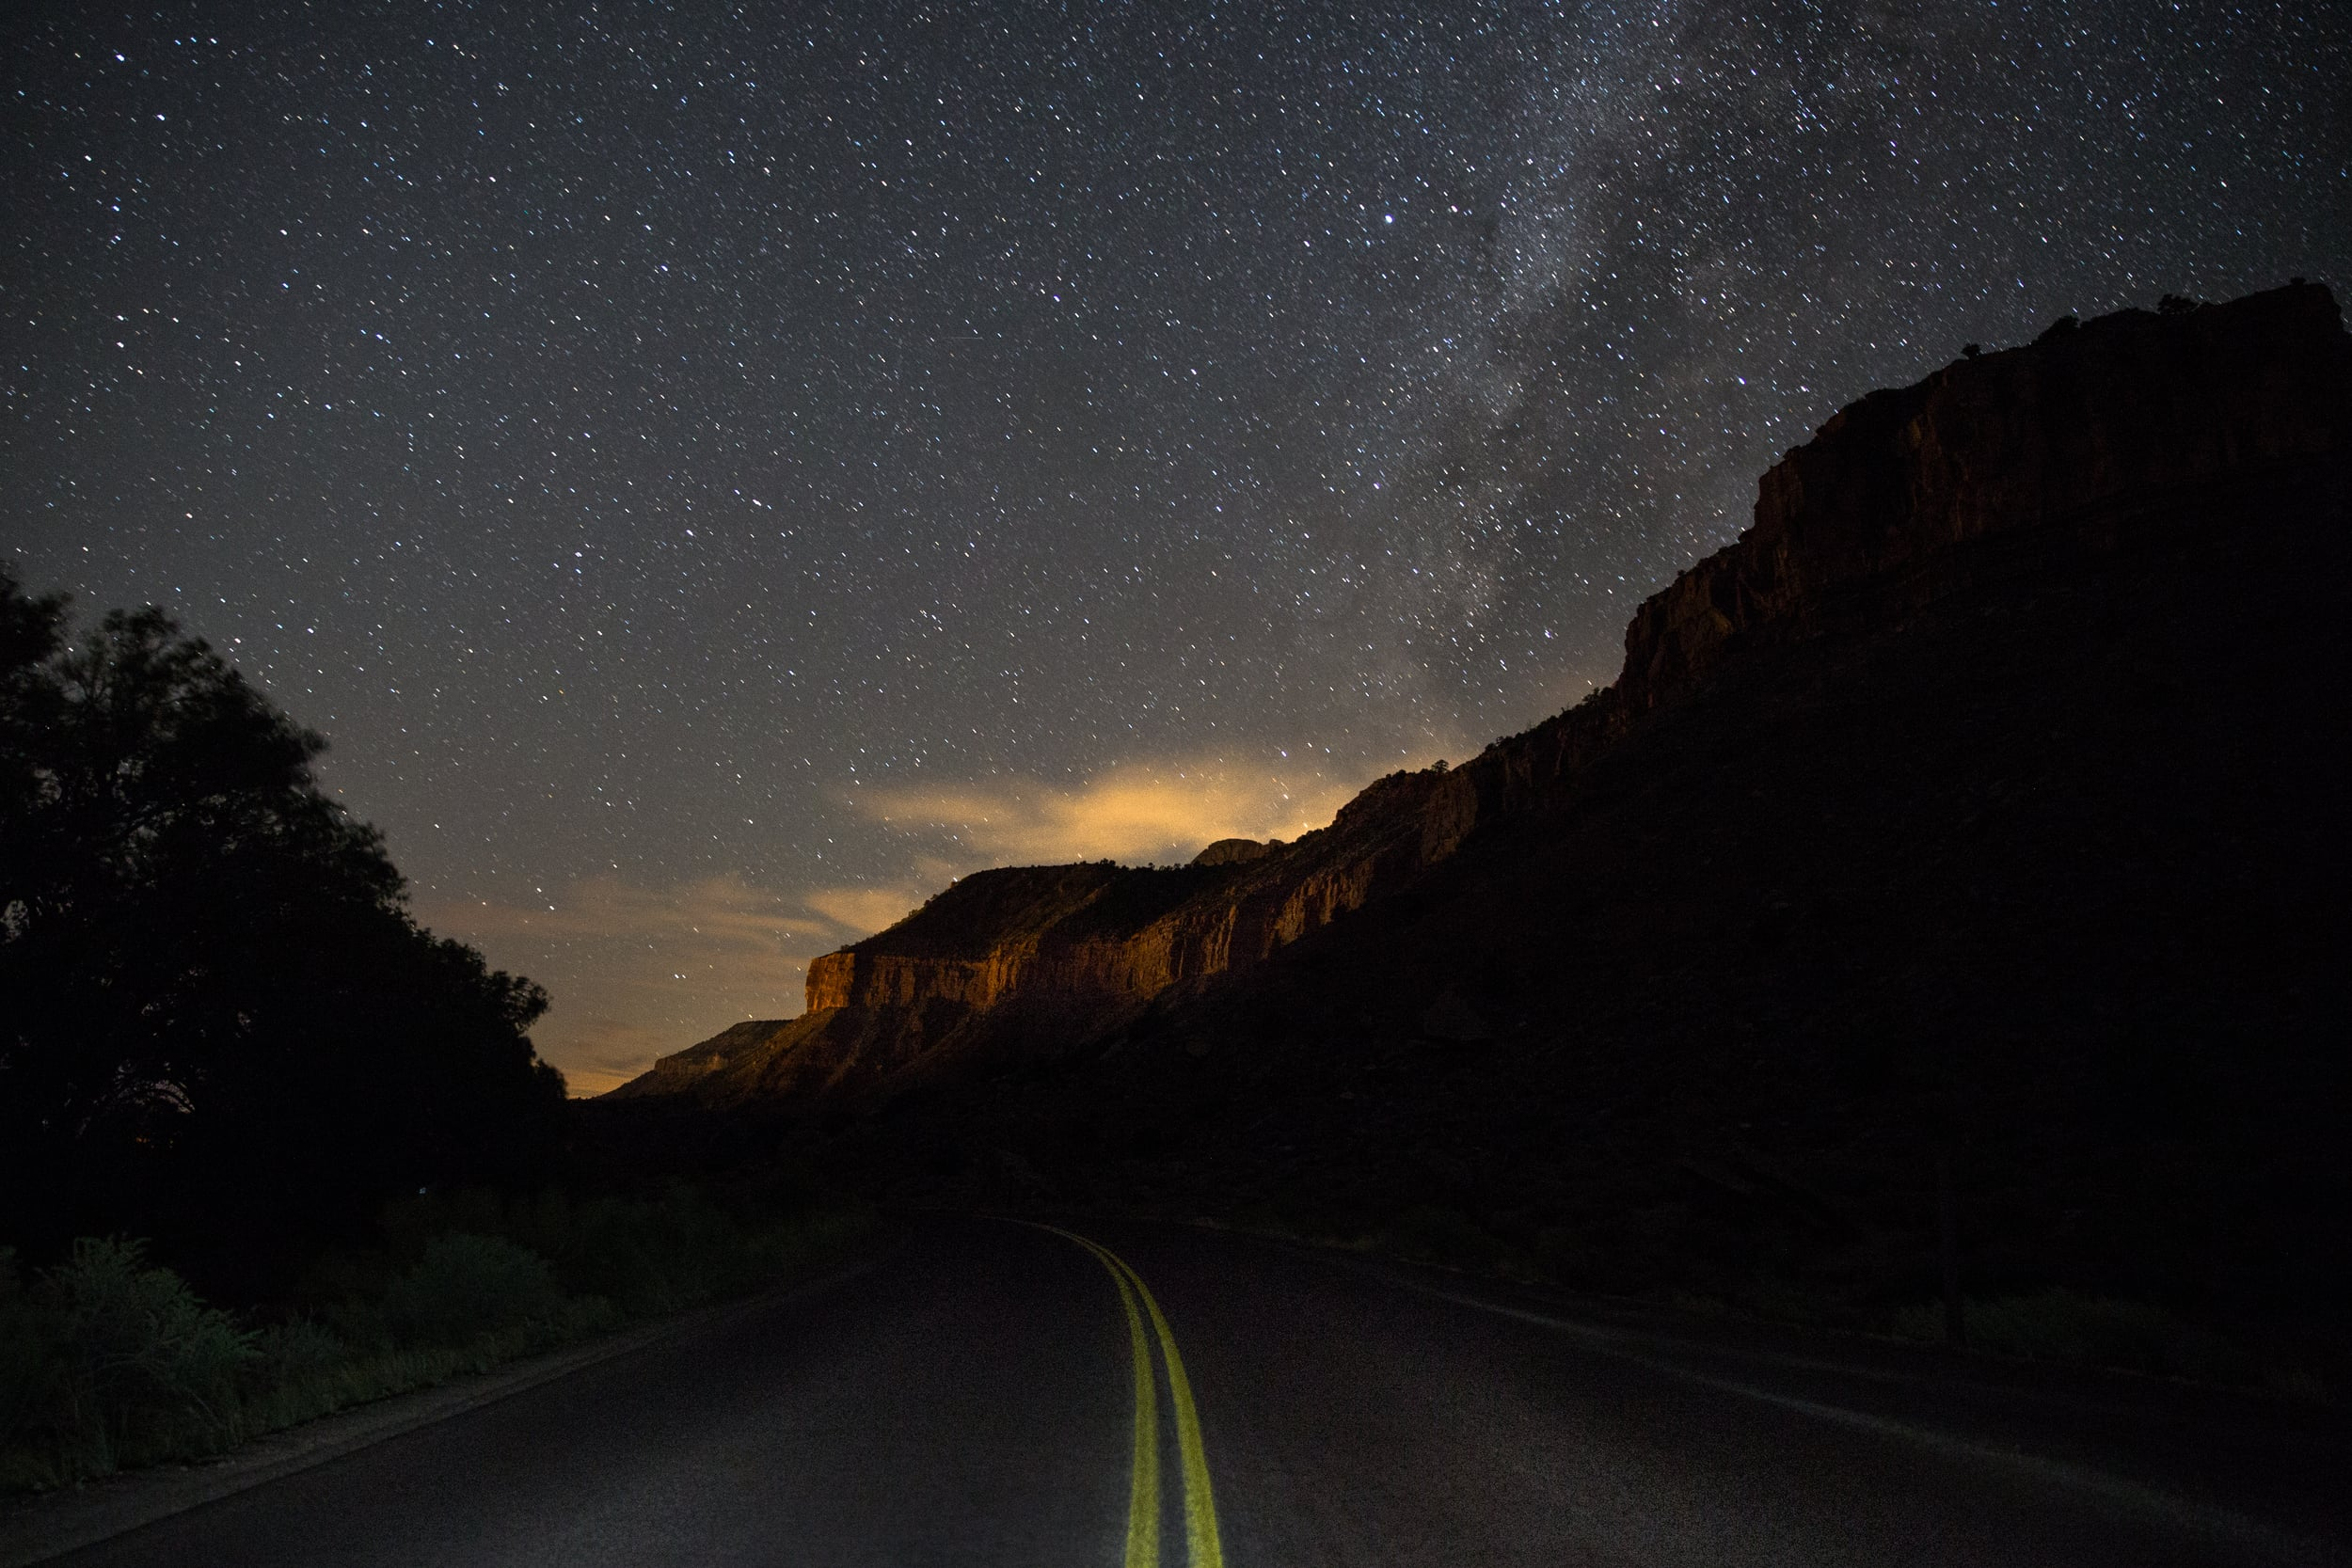 zion road night shot 2.jpg .jpg